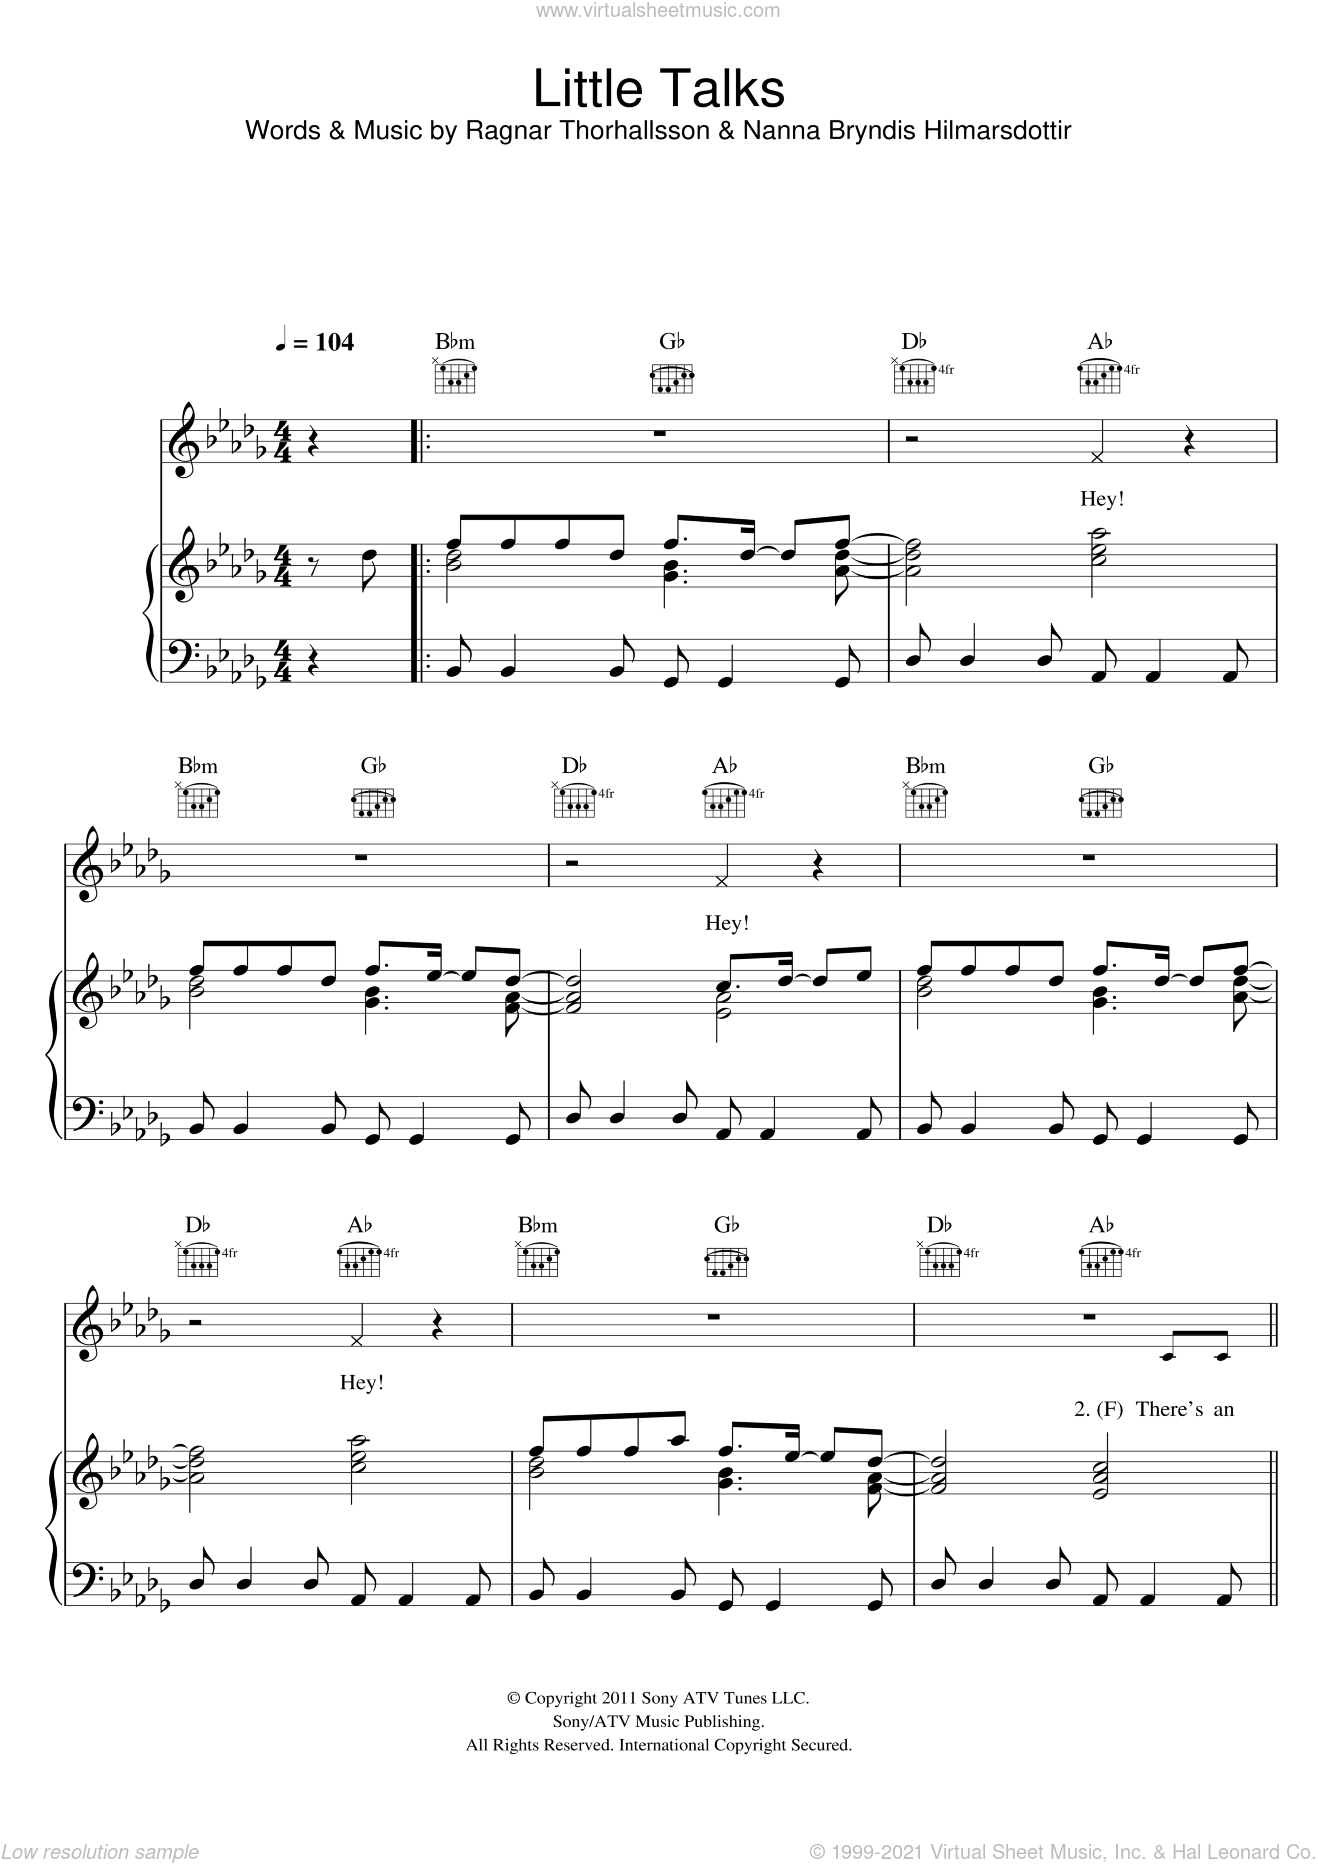 Little Talks sheet music for voice, piano or guitar by Ragnar Thorhallsson